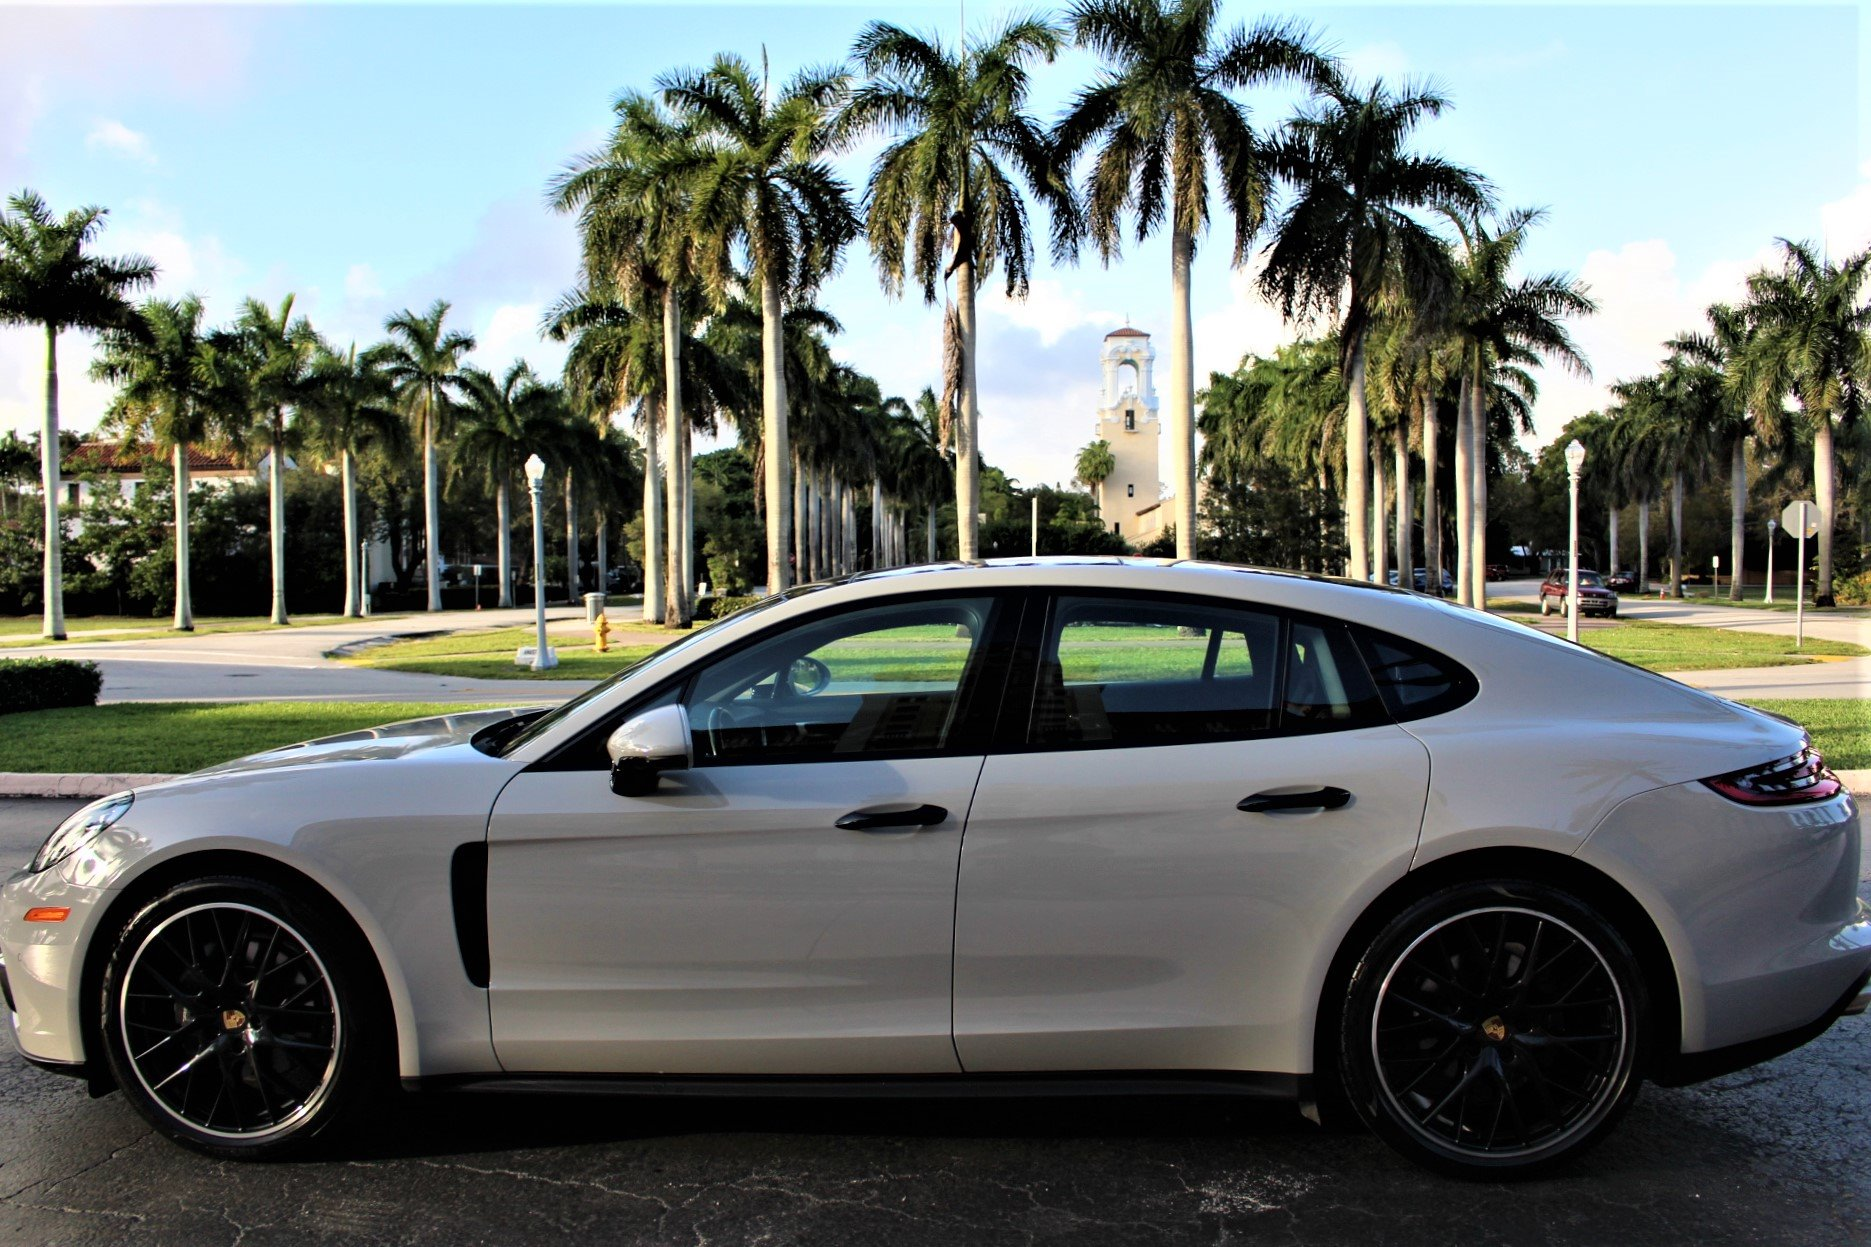 Used 2018 Porsche Panamera for sale $77,850 at The Gables Sports Cars in Miami FL 33146 1